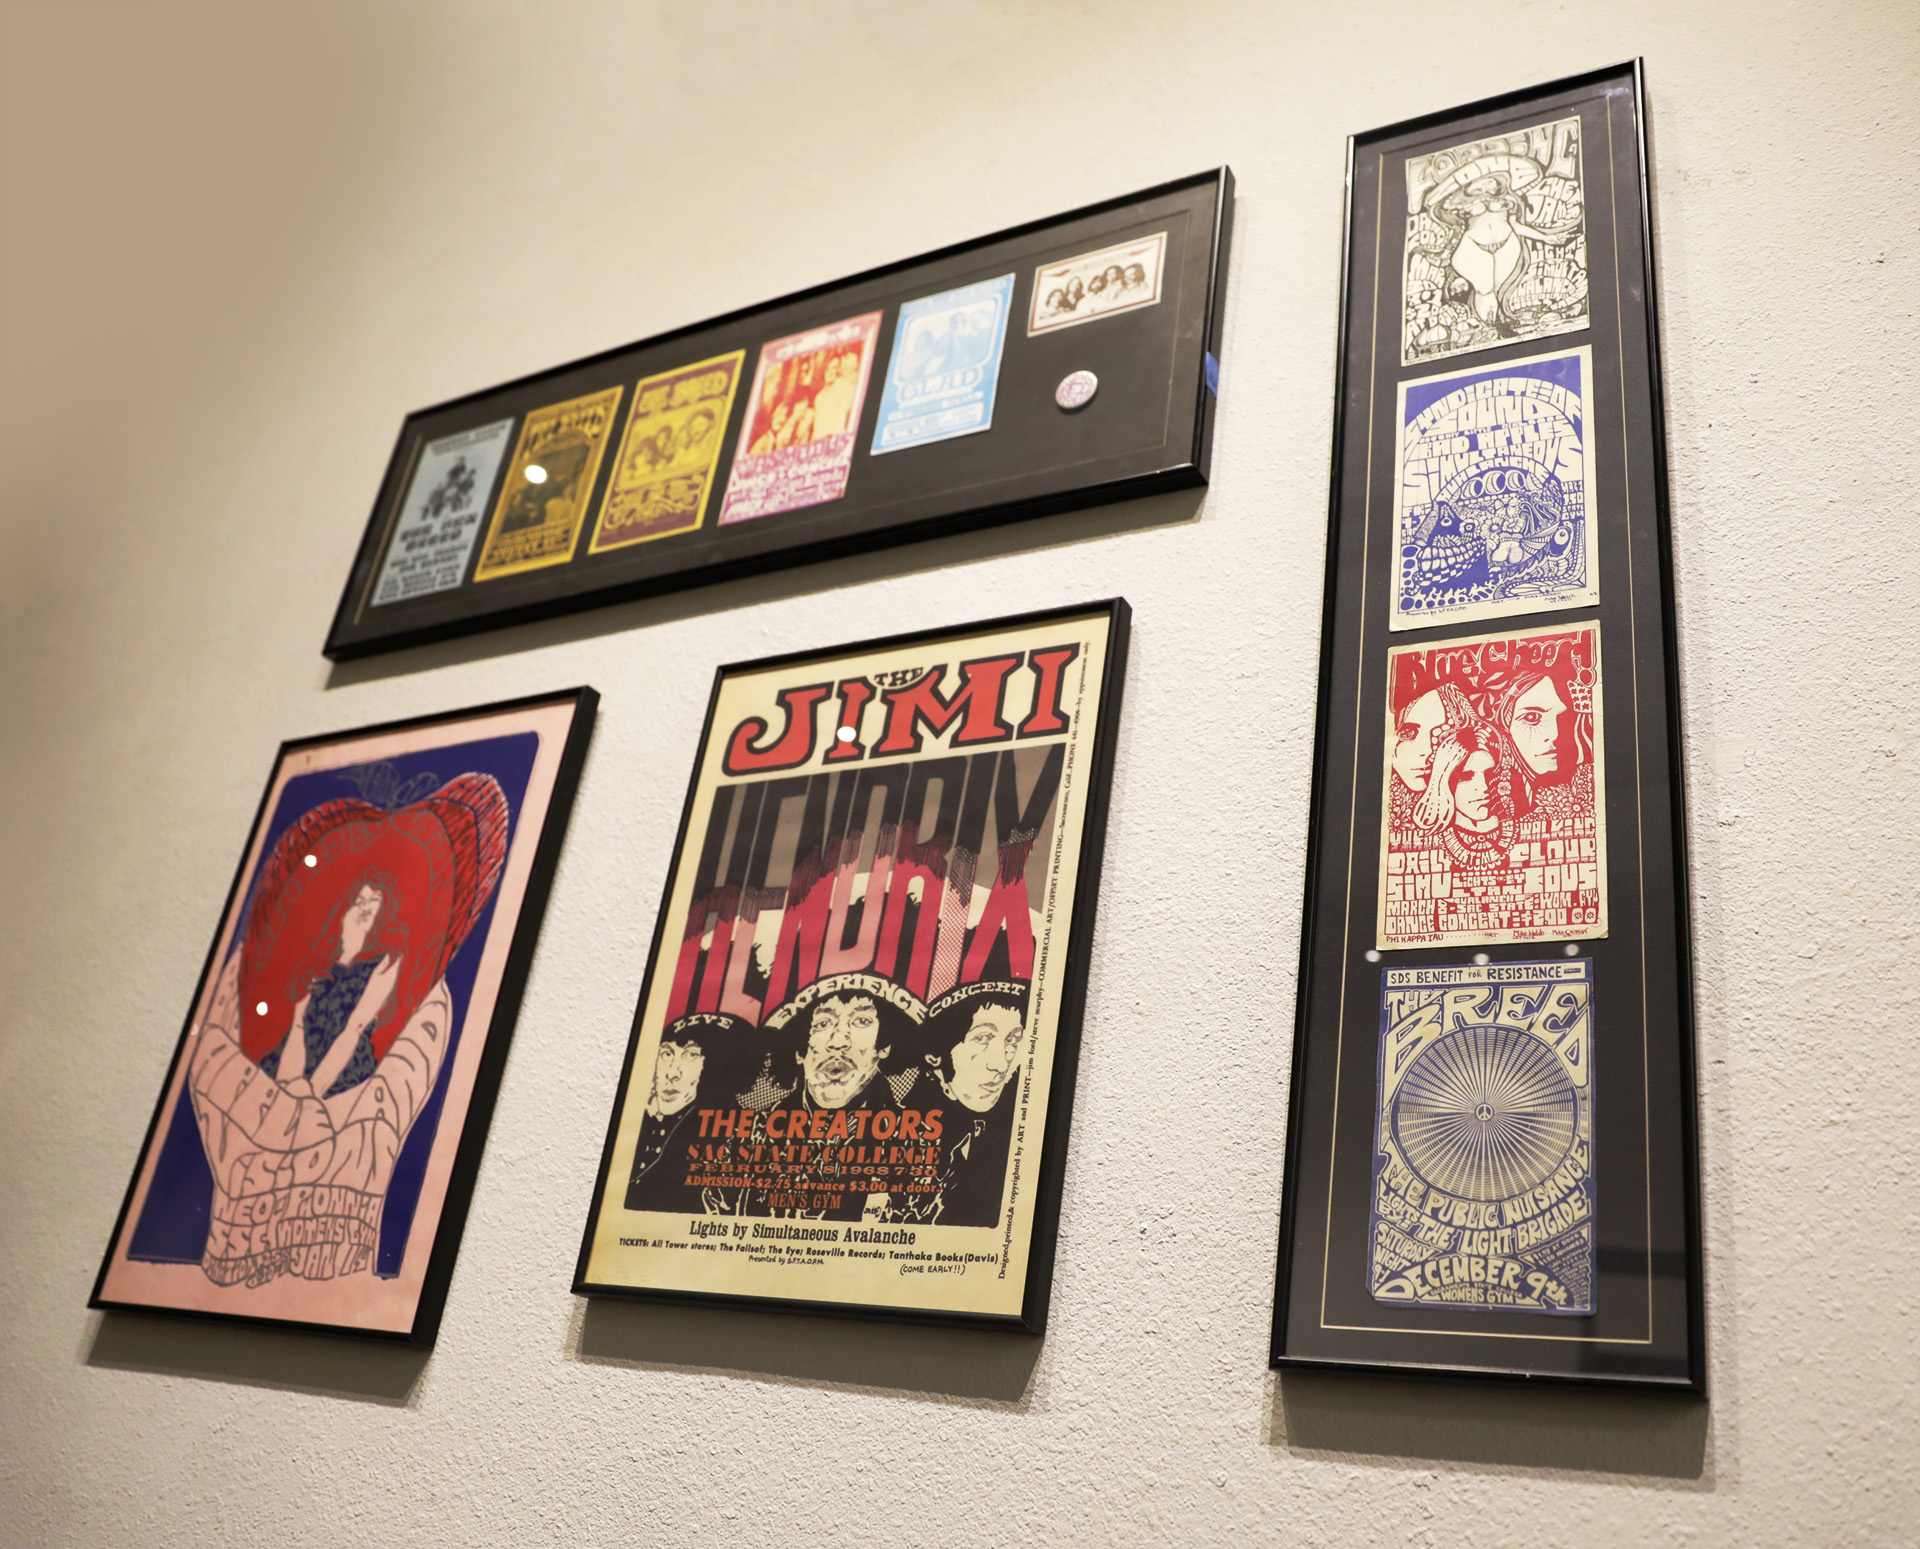 New Liry Gallery exhibit recalls city's rockin' history ... Uh Campus Map Art Gallery on uk campus map, uhcl bayou building map, uhv campus map, honolulu community college campus map, jd campus map, ul campus map, morehead campus map, uw campus map, st campus map, phoenix college campus map, main campus map, ma campus map, u of h map, ge campus map, fh campus map, york college campus map, va campus map, uhd campus map, hawaii campus map, unh campus map,